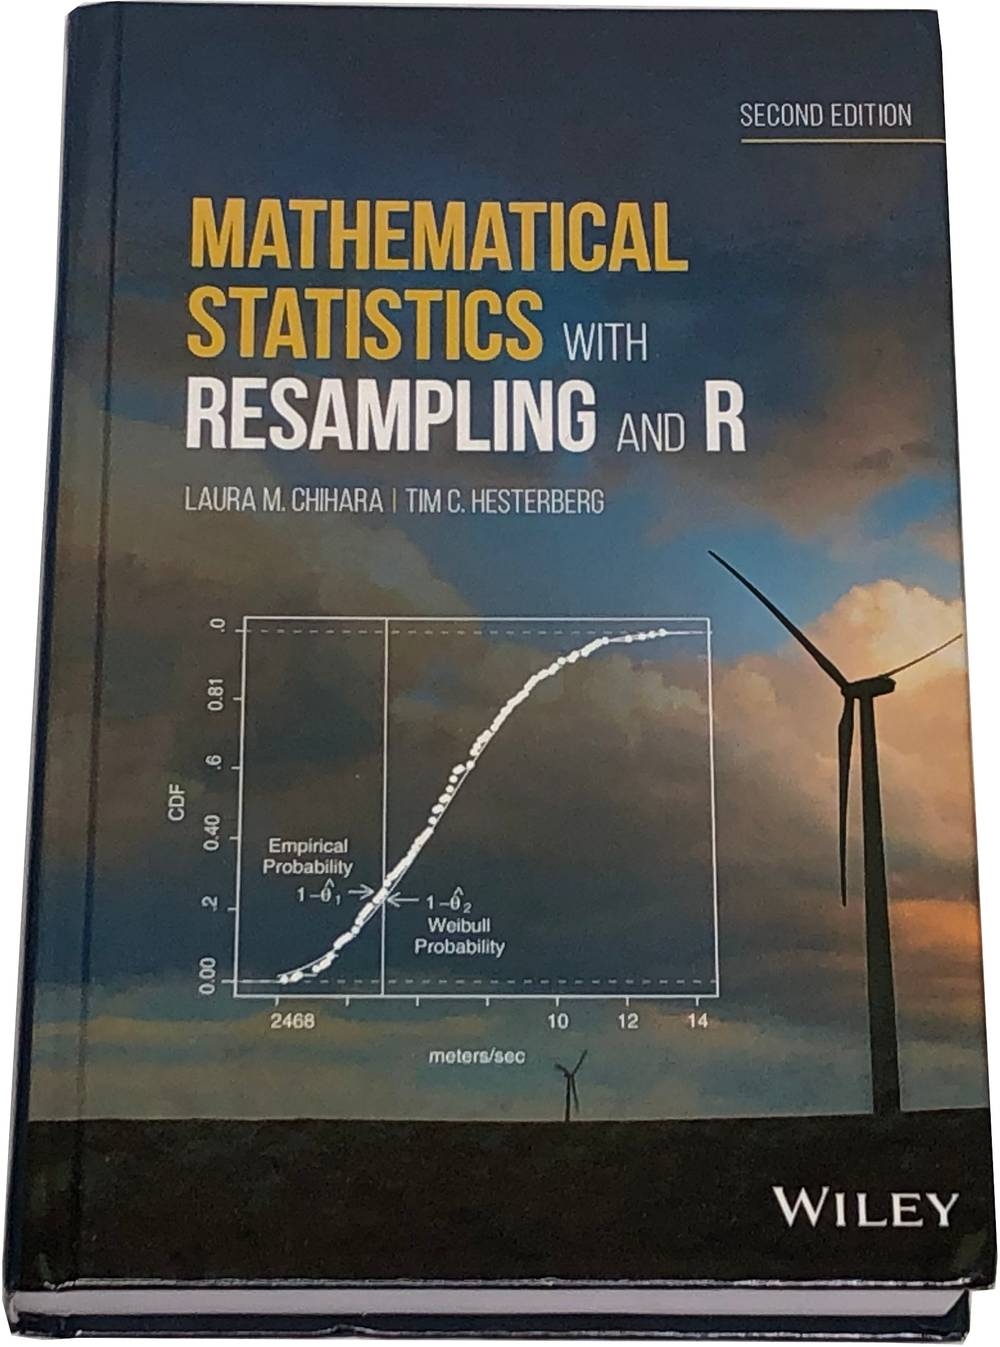 Book image of Mathematical Statistics with Resampling and R.